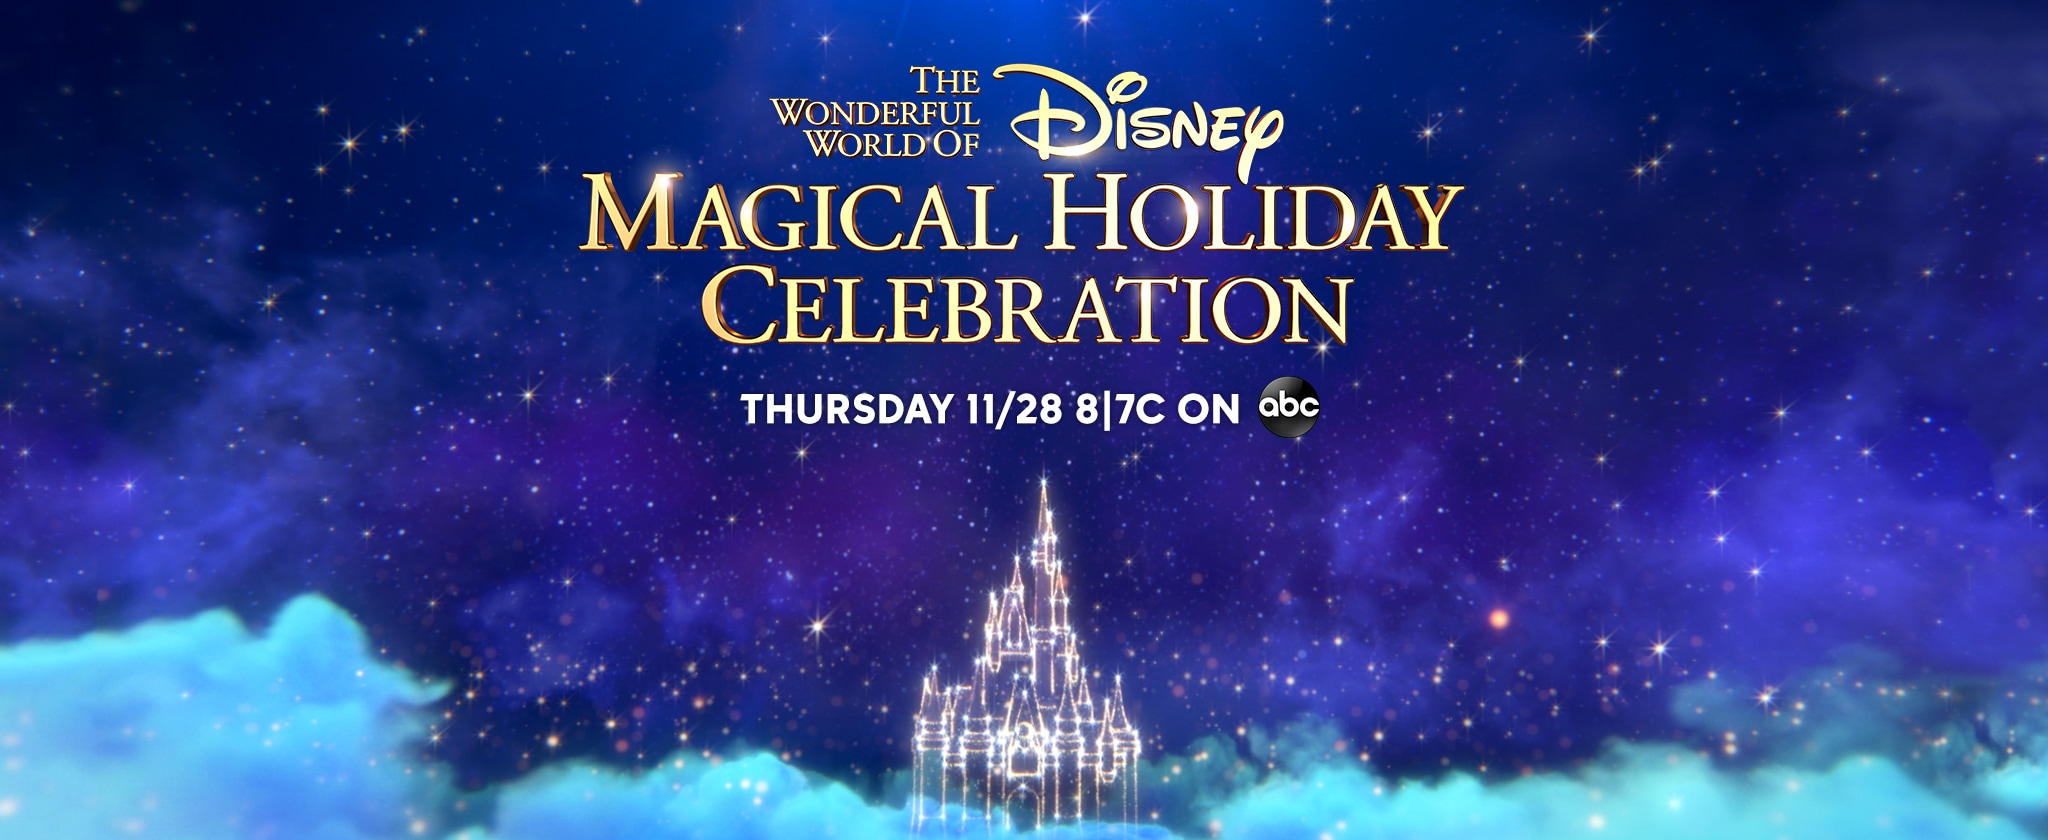 The Wonderful World of Disney Magical Holiday Celebration on ABC - THURSDAY, NOV 28 8|7c